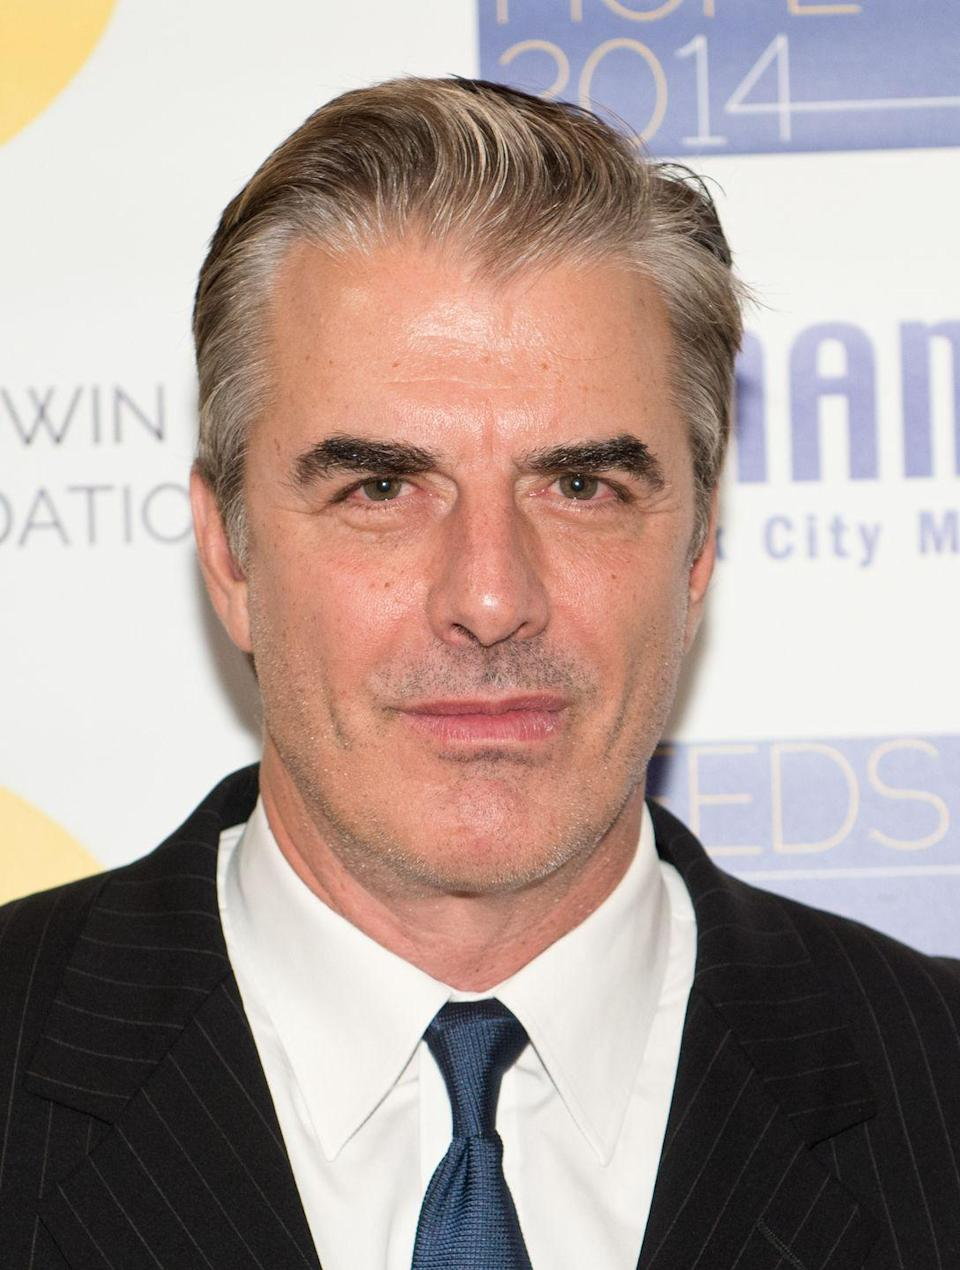 <p>Chris Noth has gradually incorporated his gray roots into his look since, but his bold brows have remained dark.</p>